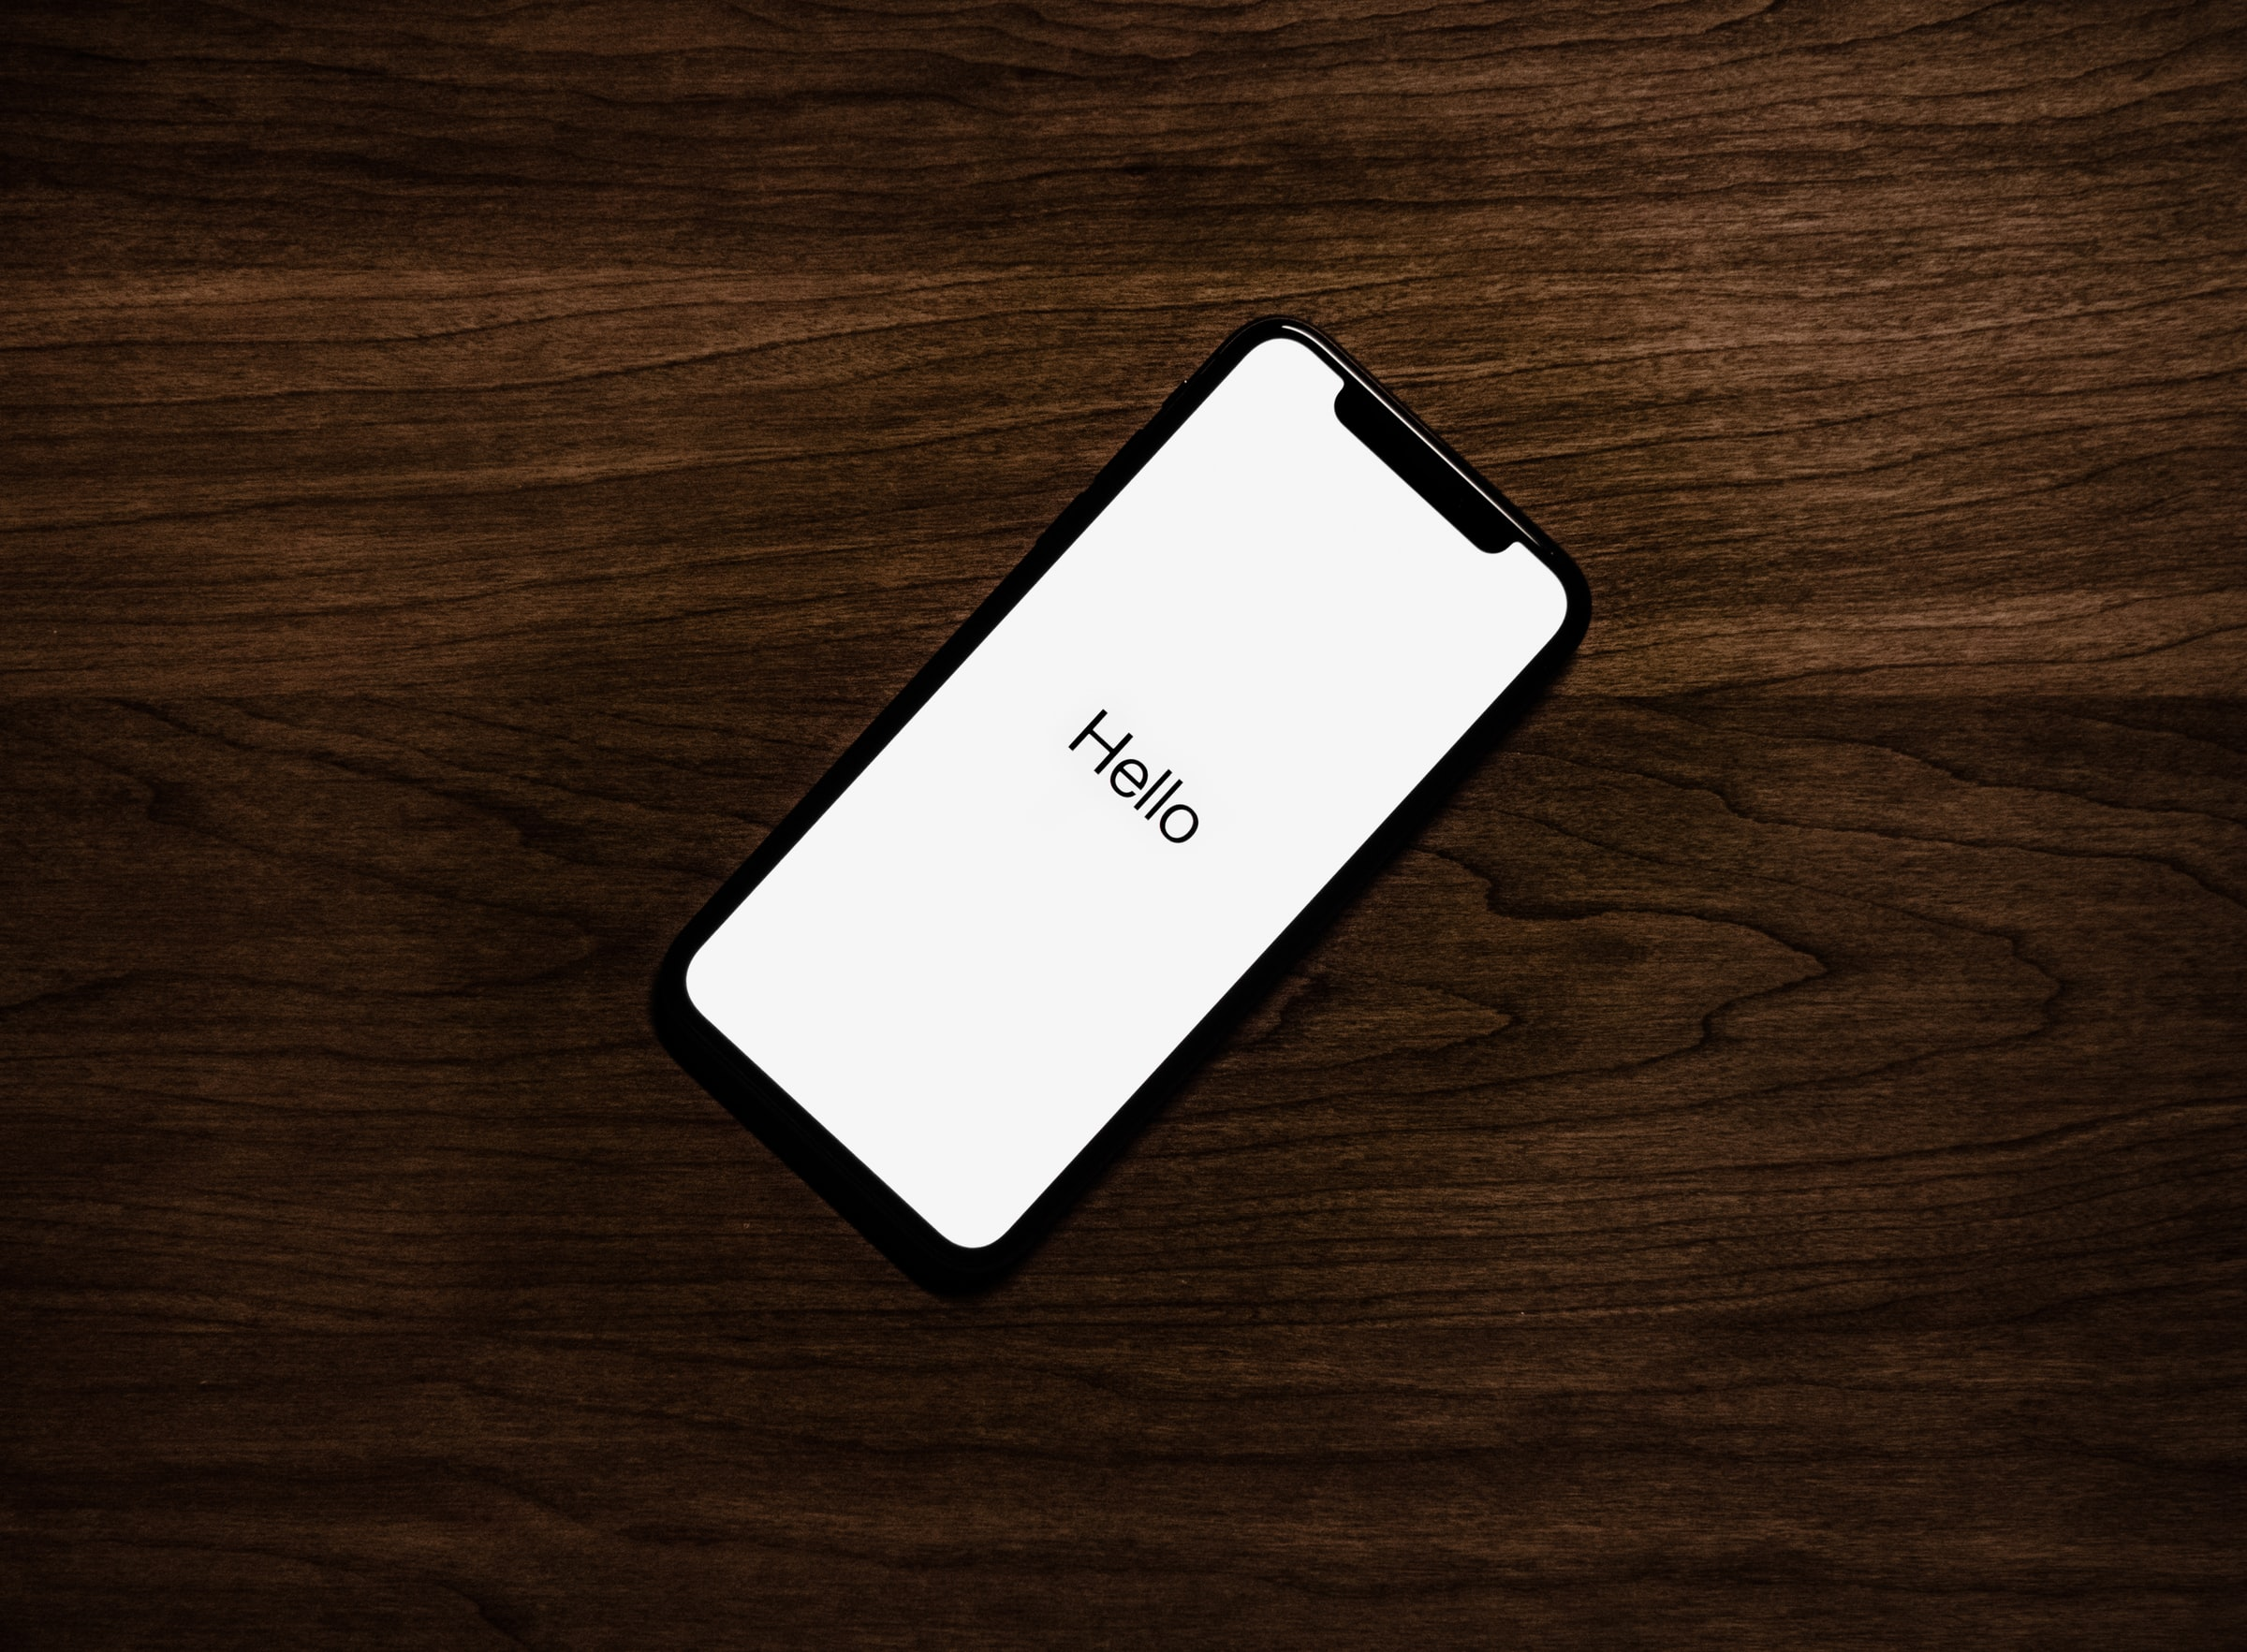 A iphone on a table